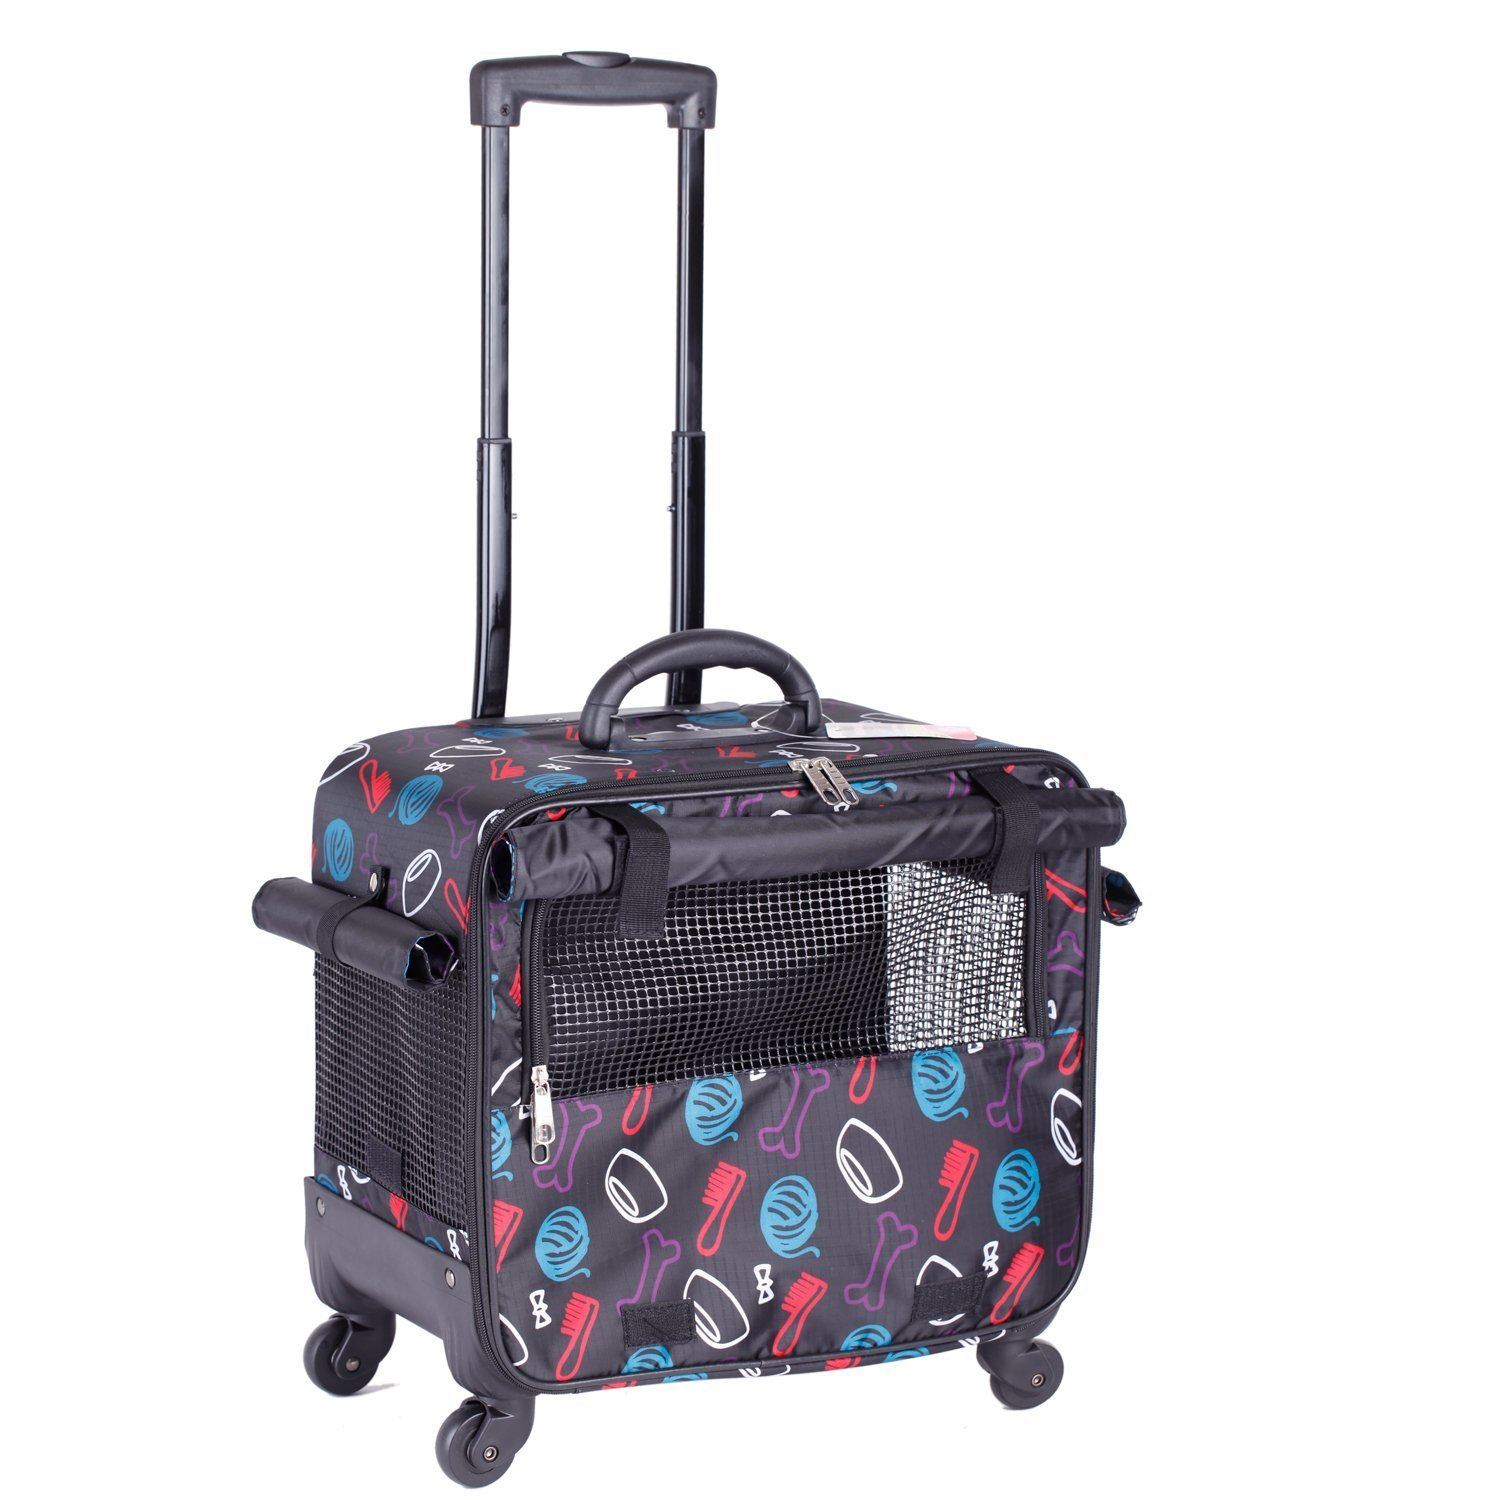 BELLAMORE GIFT Carrier Cat Bag Handbag Pet Carrier Chihuahua Kitten Vet Cage Case Trolley Suitcase by BELLAMORE GIFT